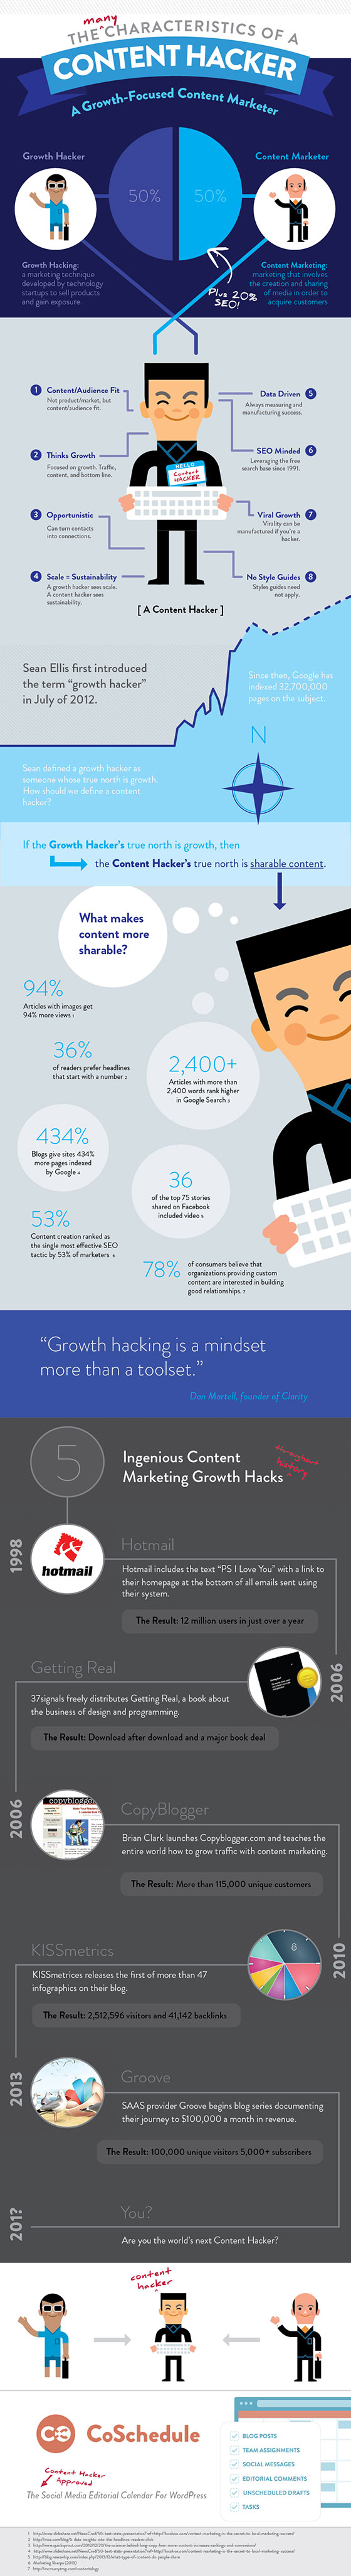 content marketing hacker